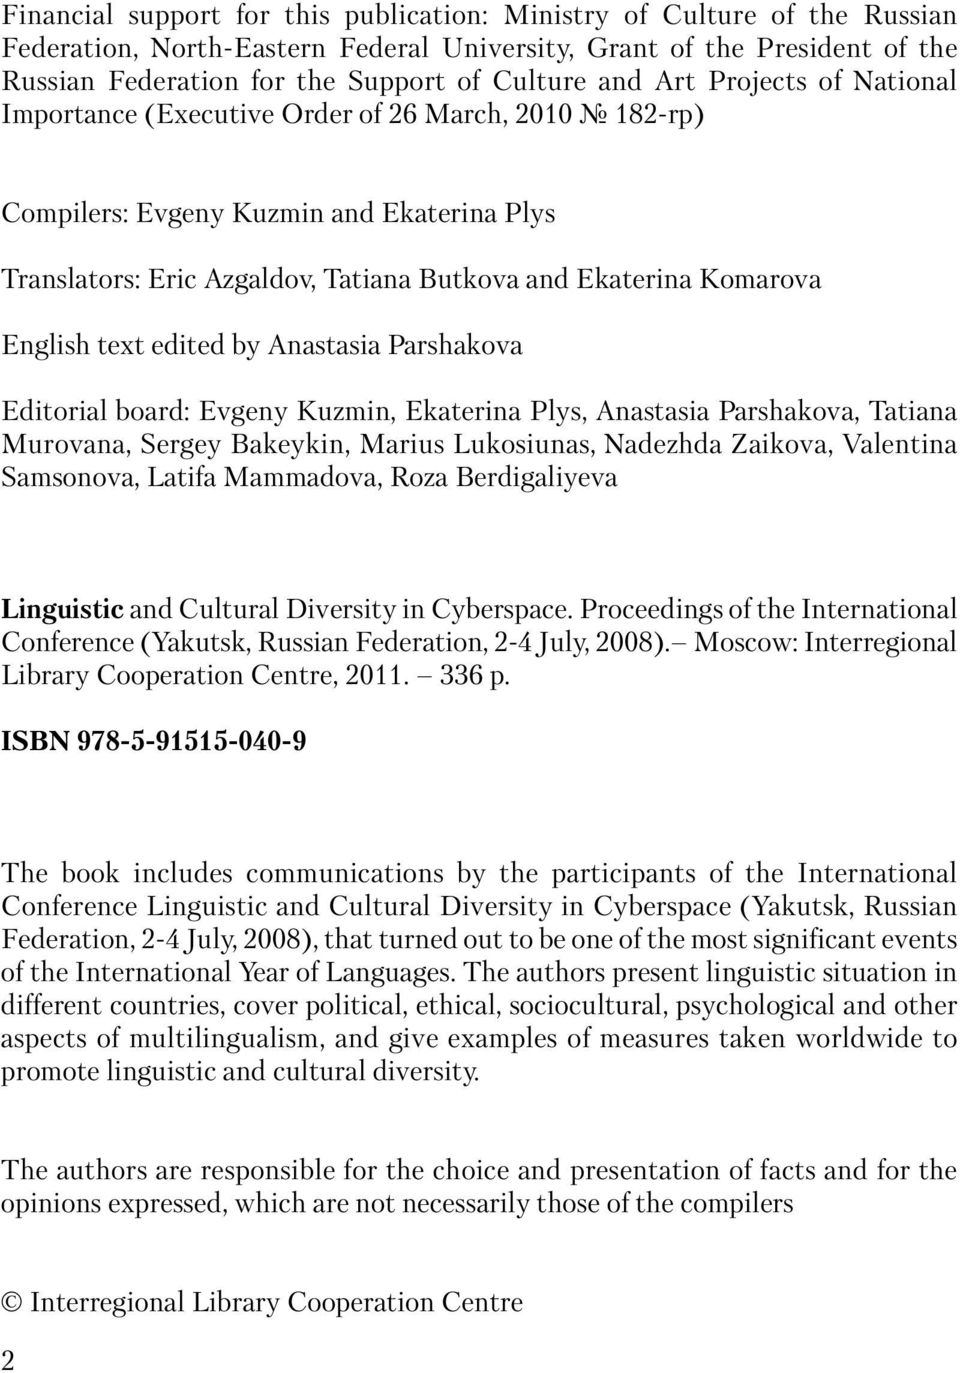 English text edited by Anastasia Parshakova Editorial board: Evgeny Kuzmin, Ekaterina Plys, Anastasia Parshakova, Tatiana Murovana, Sergey Bakeykin, Marius Lukosiunas, Nadezhda Zaikova, Valentina